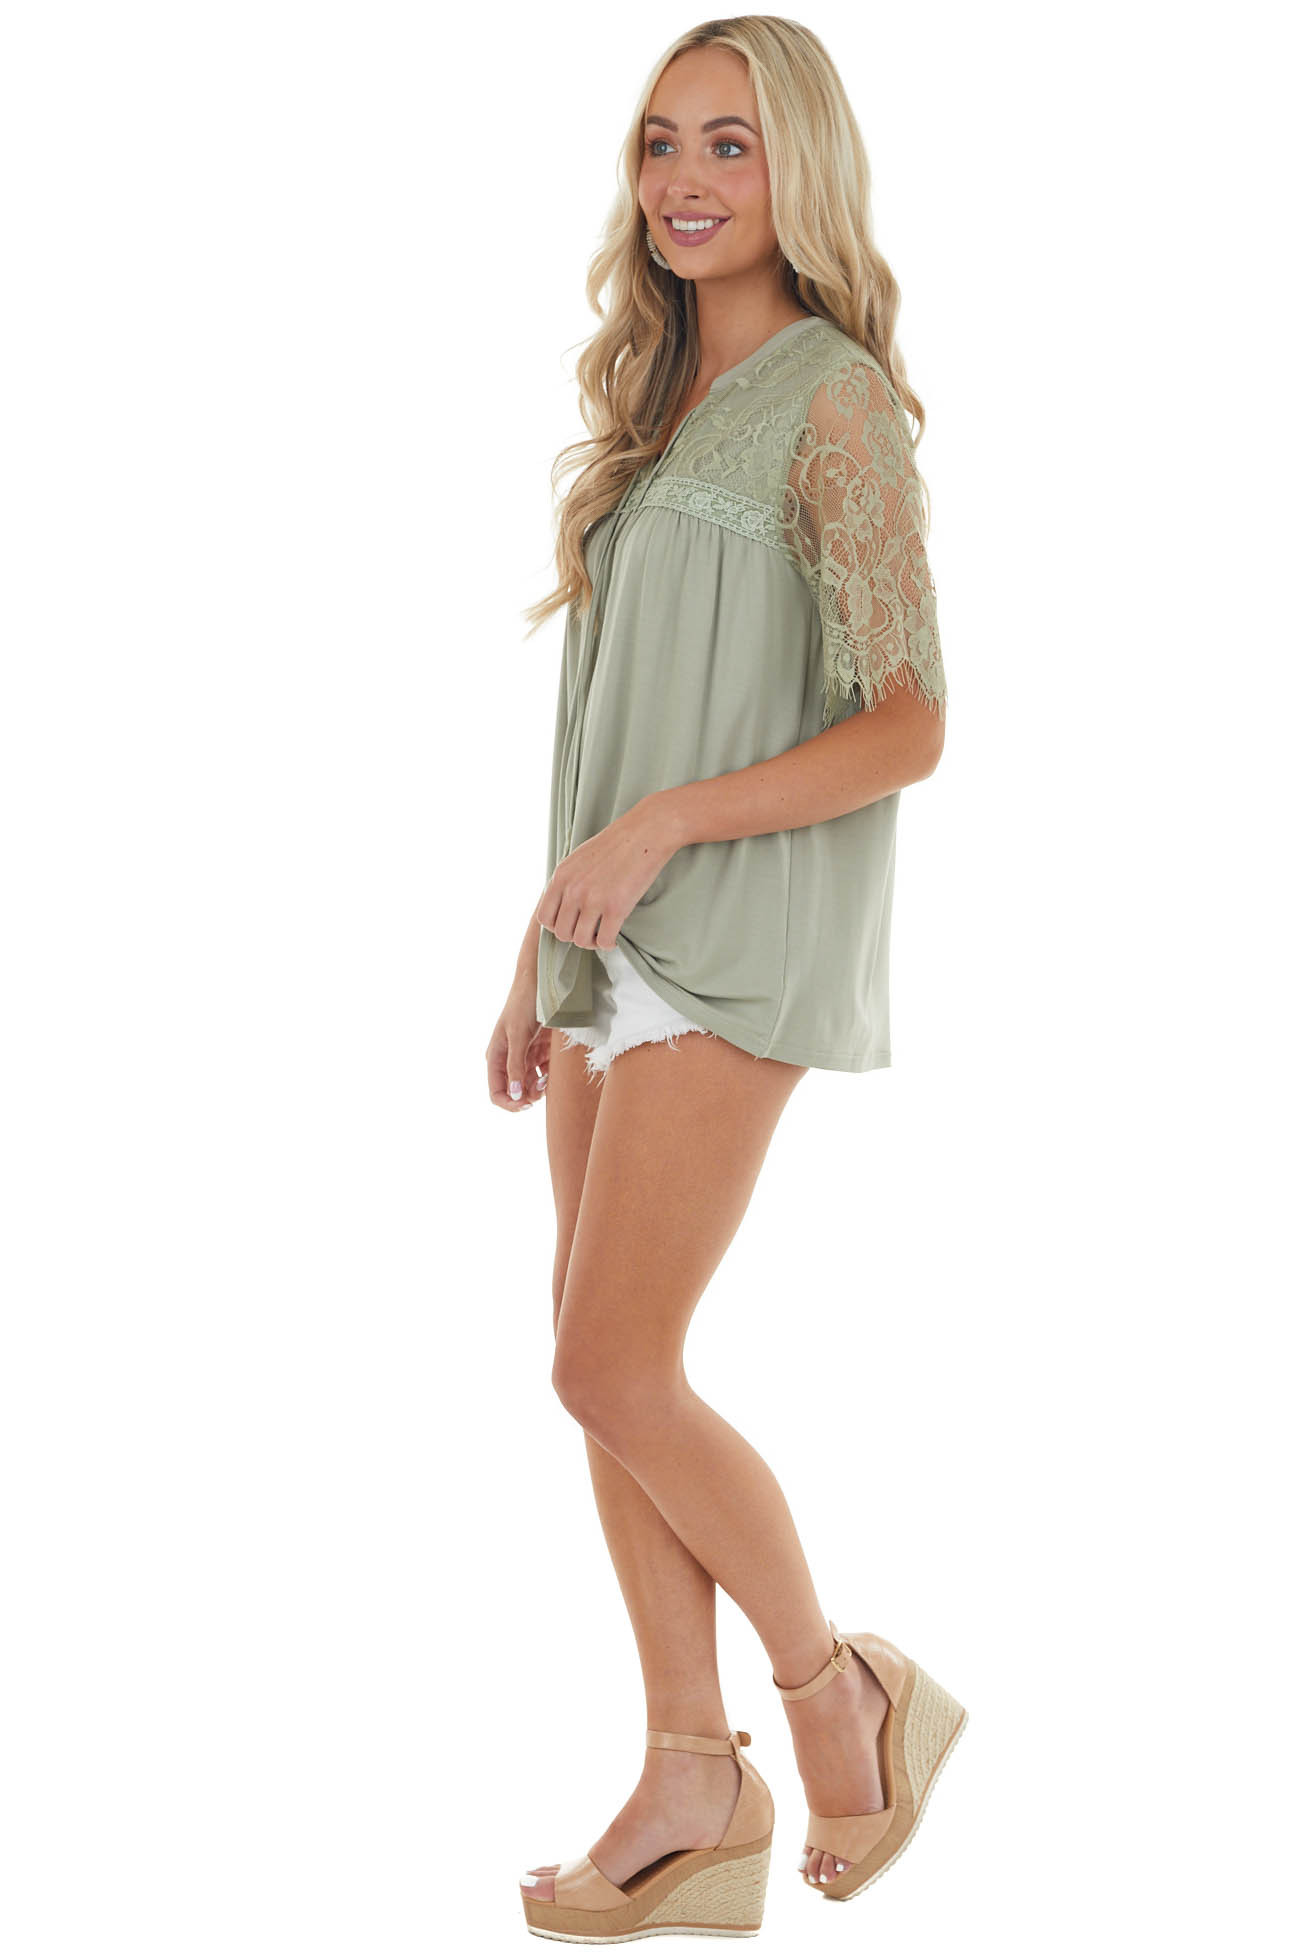 Pale Olive Short Sleeve Lace Yoke Knit Top with Front Tie